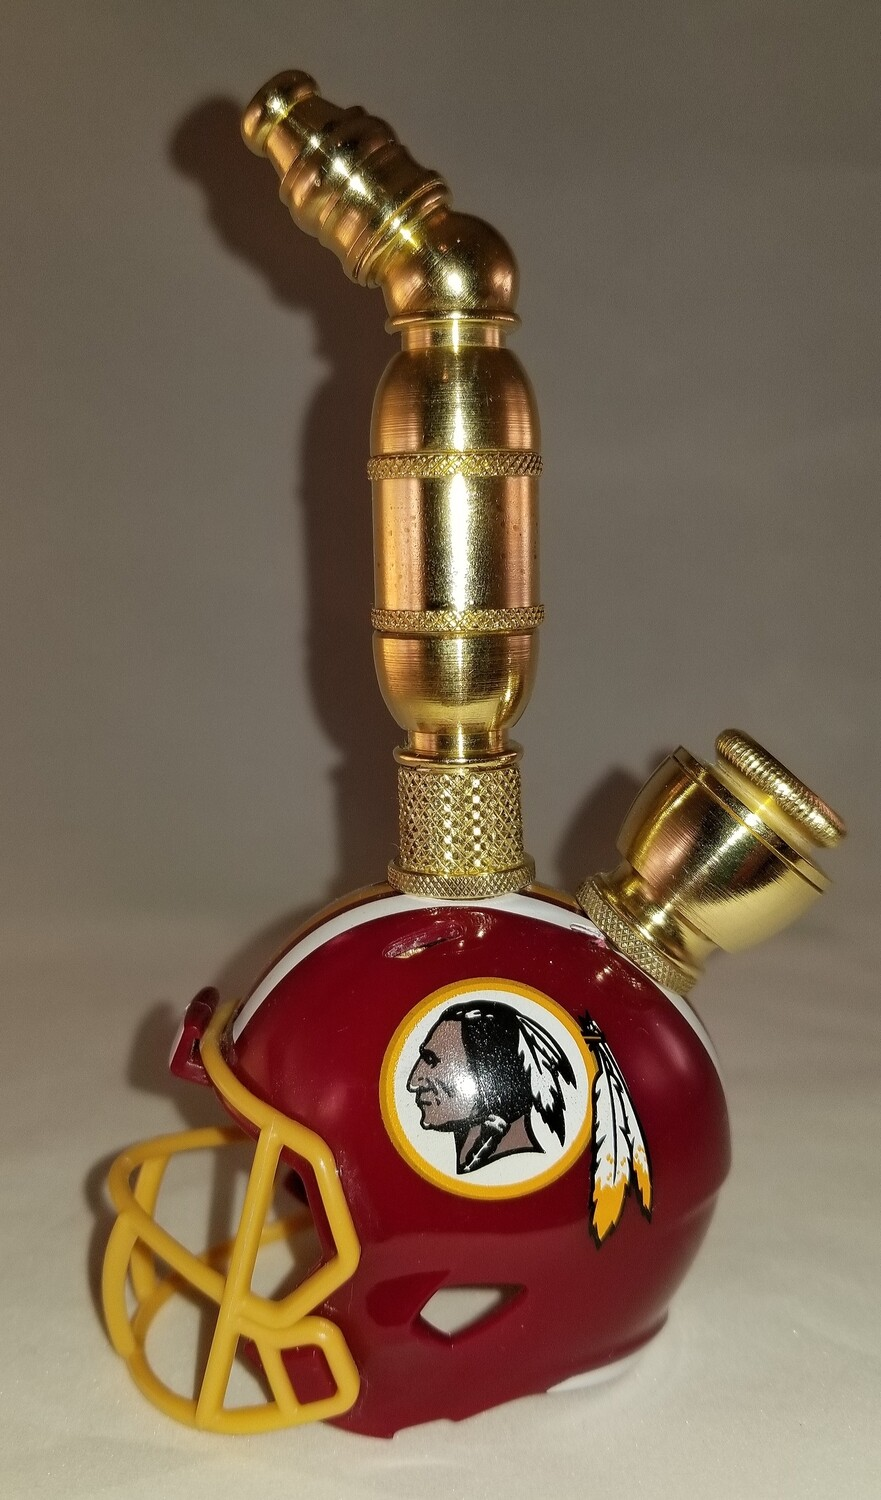 WASHINGTON REDSKINS NFL FOOTBALL HELMET SMOKING PIPE Upright/Brass